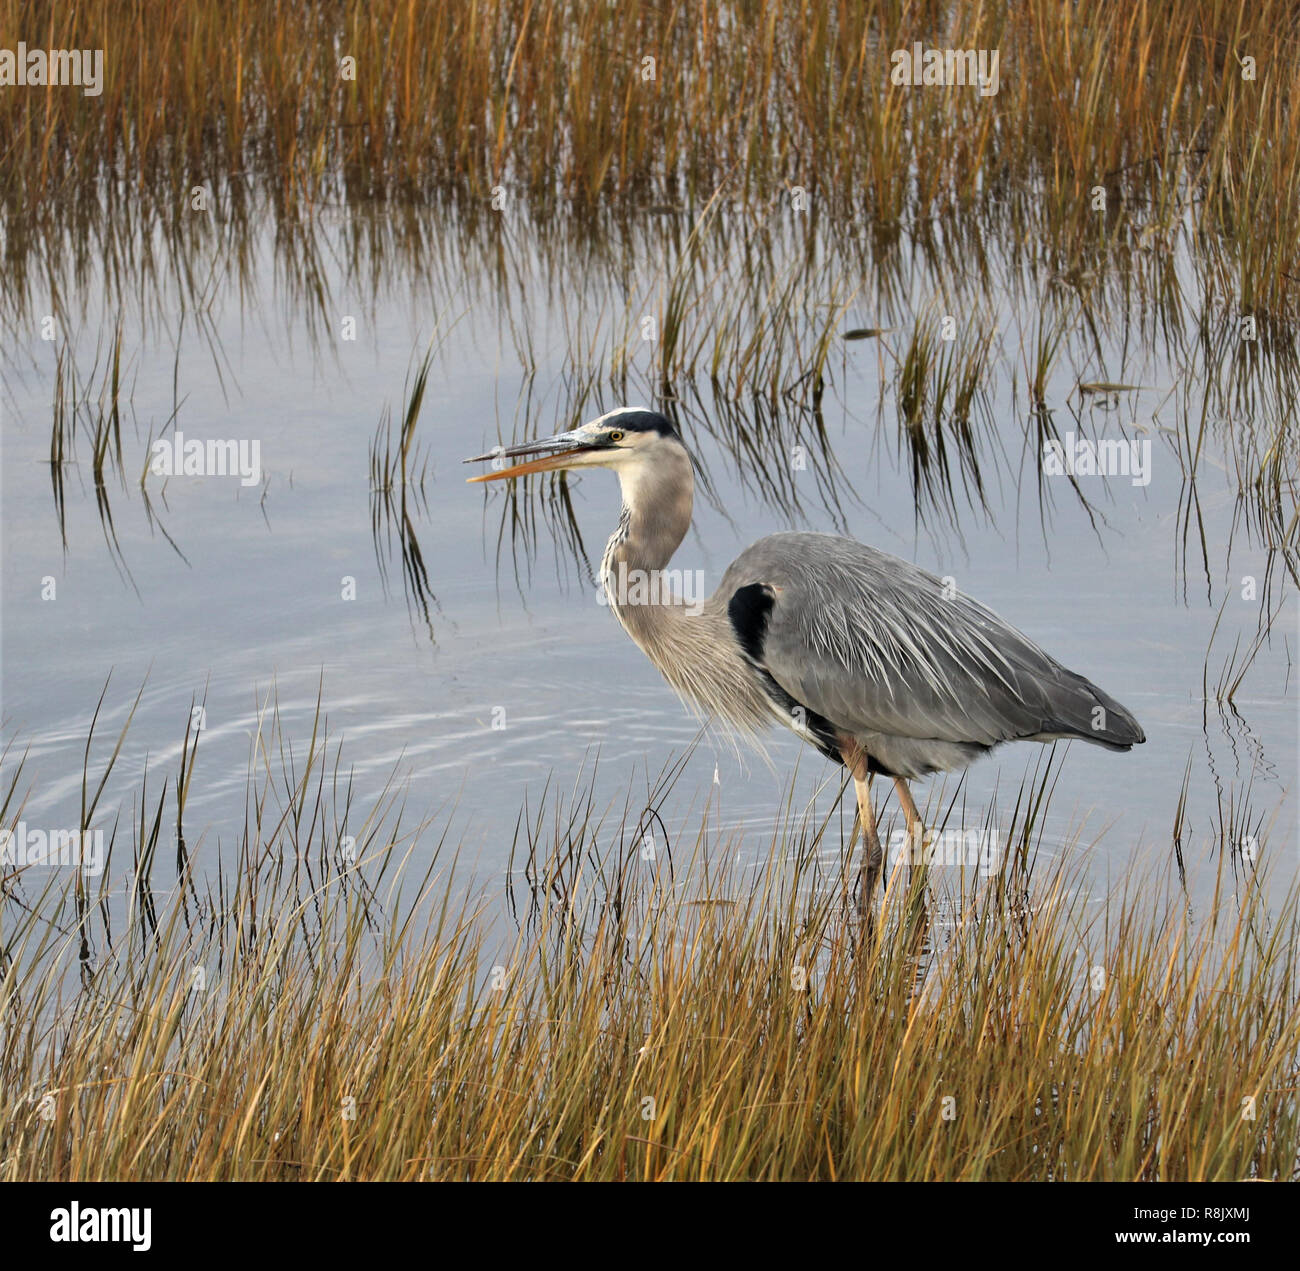 a big adult heron walking in the water eating herbs Stock Photo